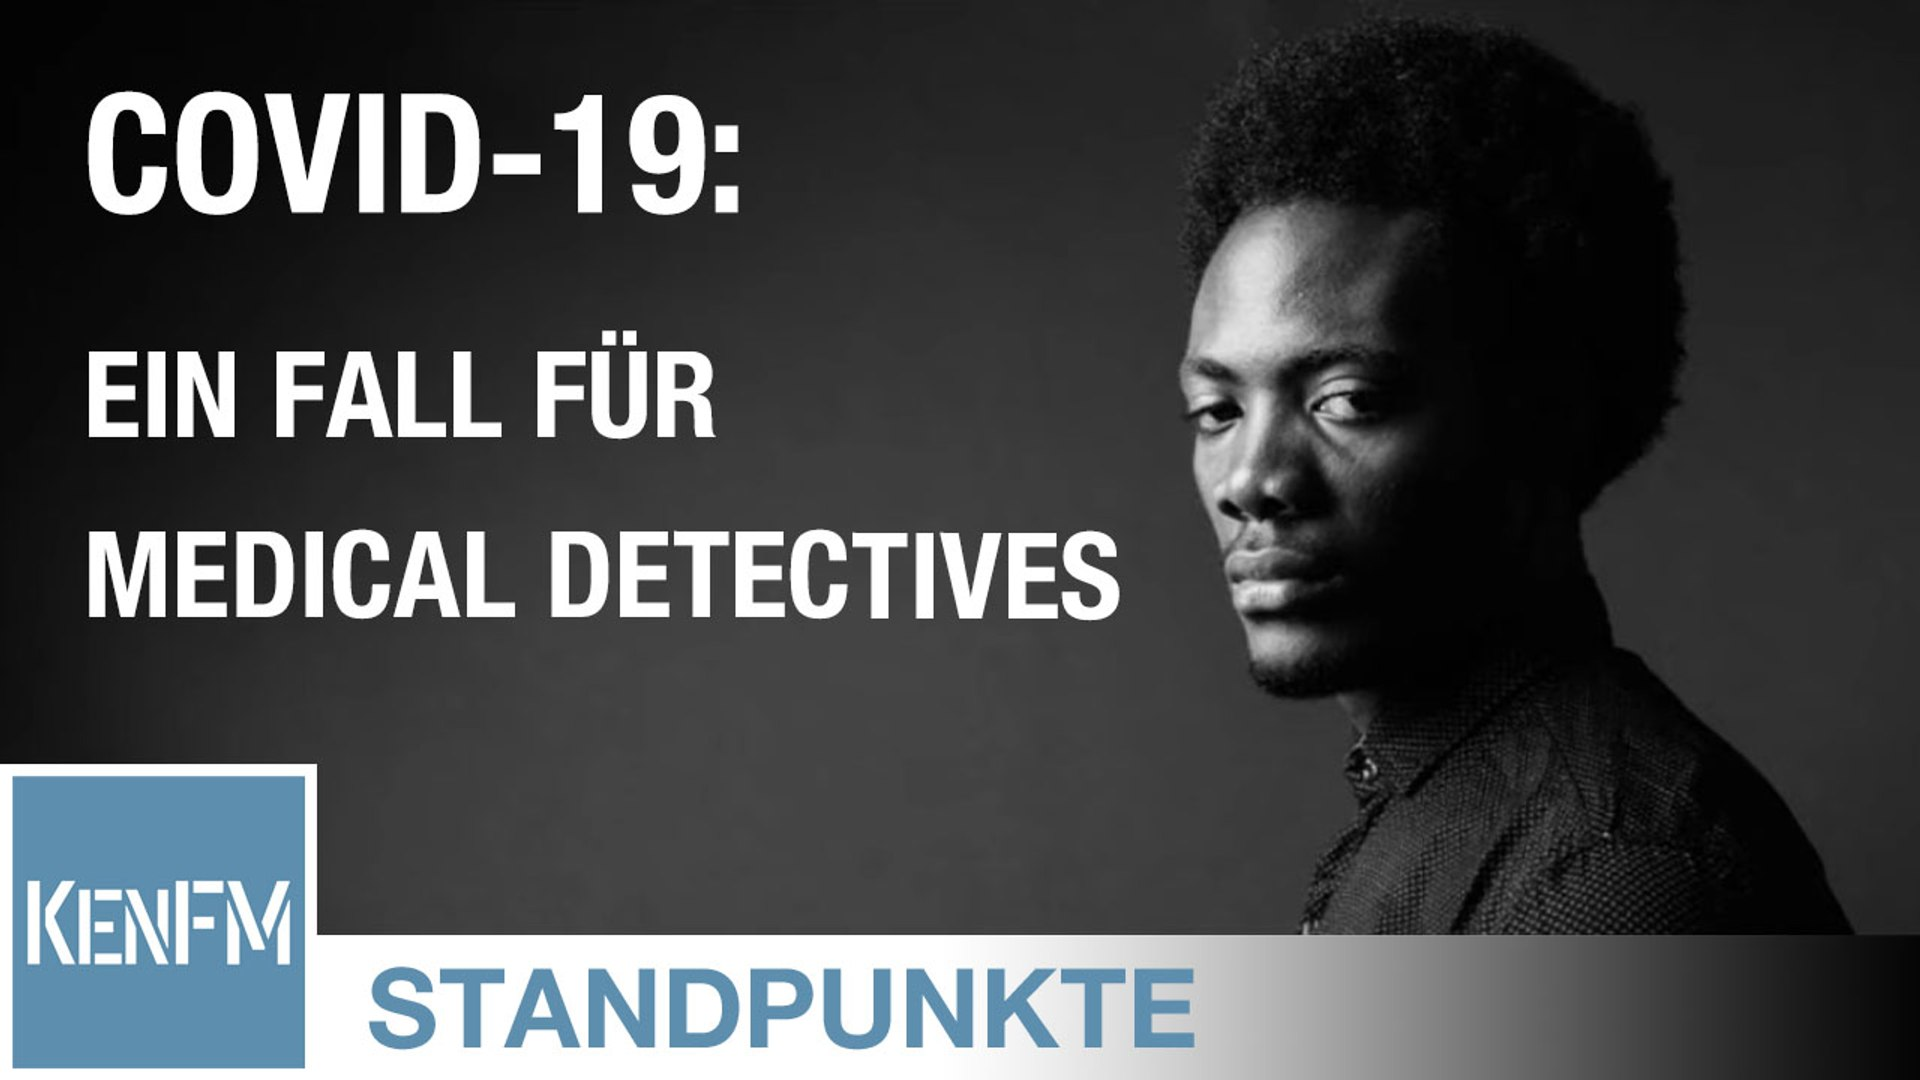 STANDPUNKTE • Covid-19 – ein Fall für Medical Detectives